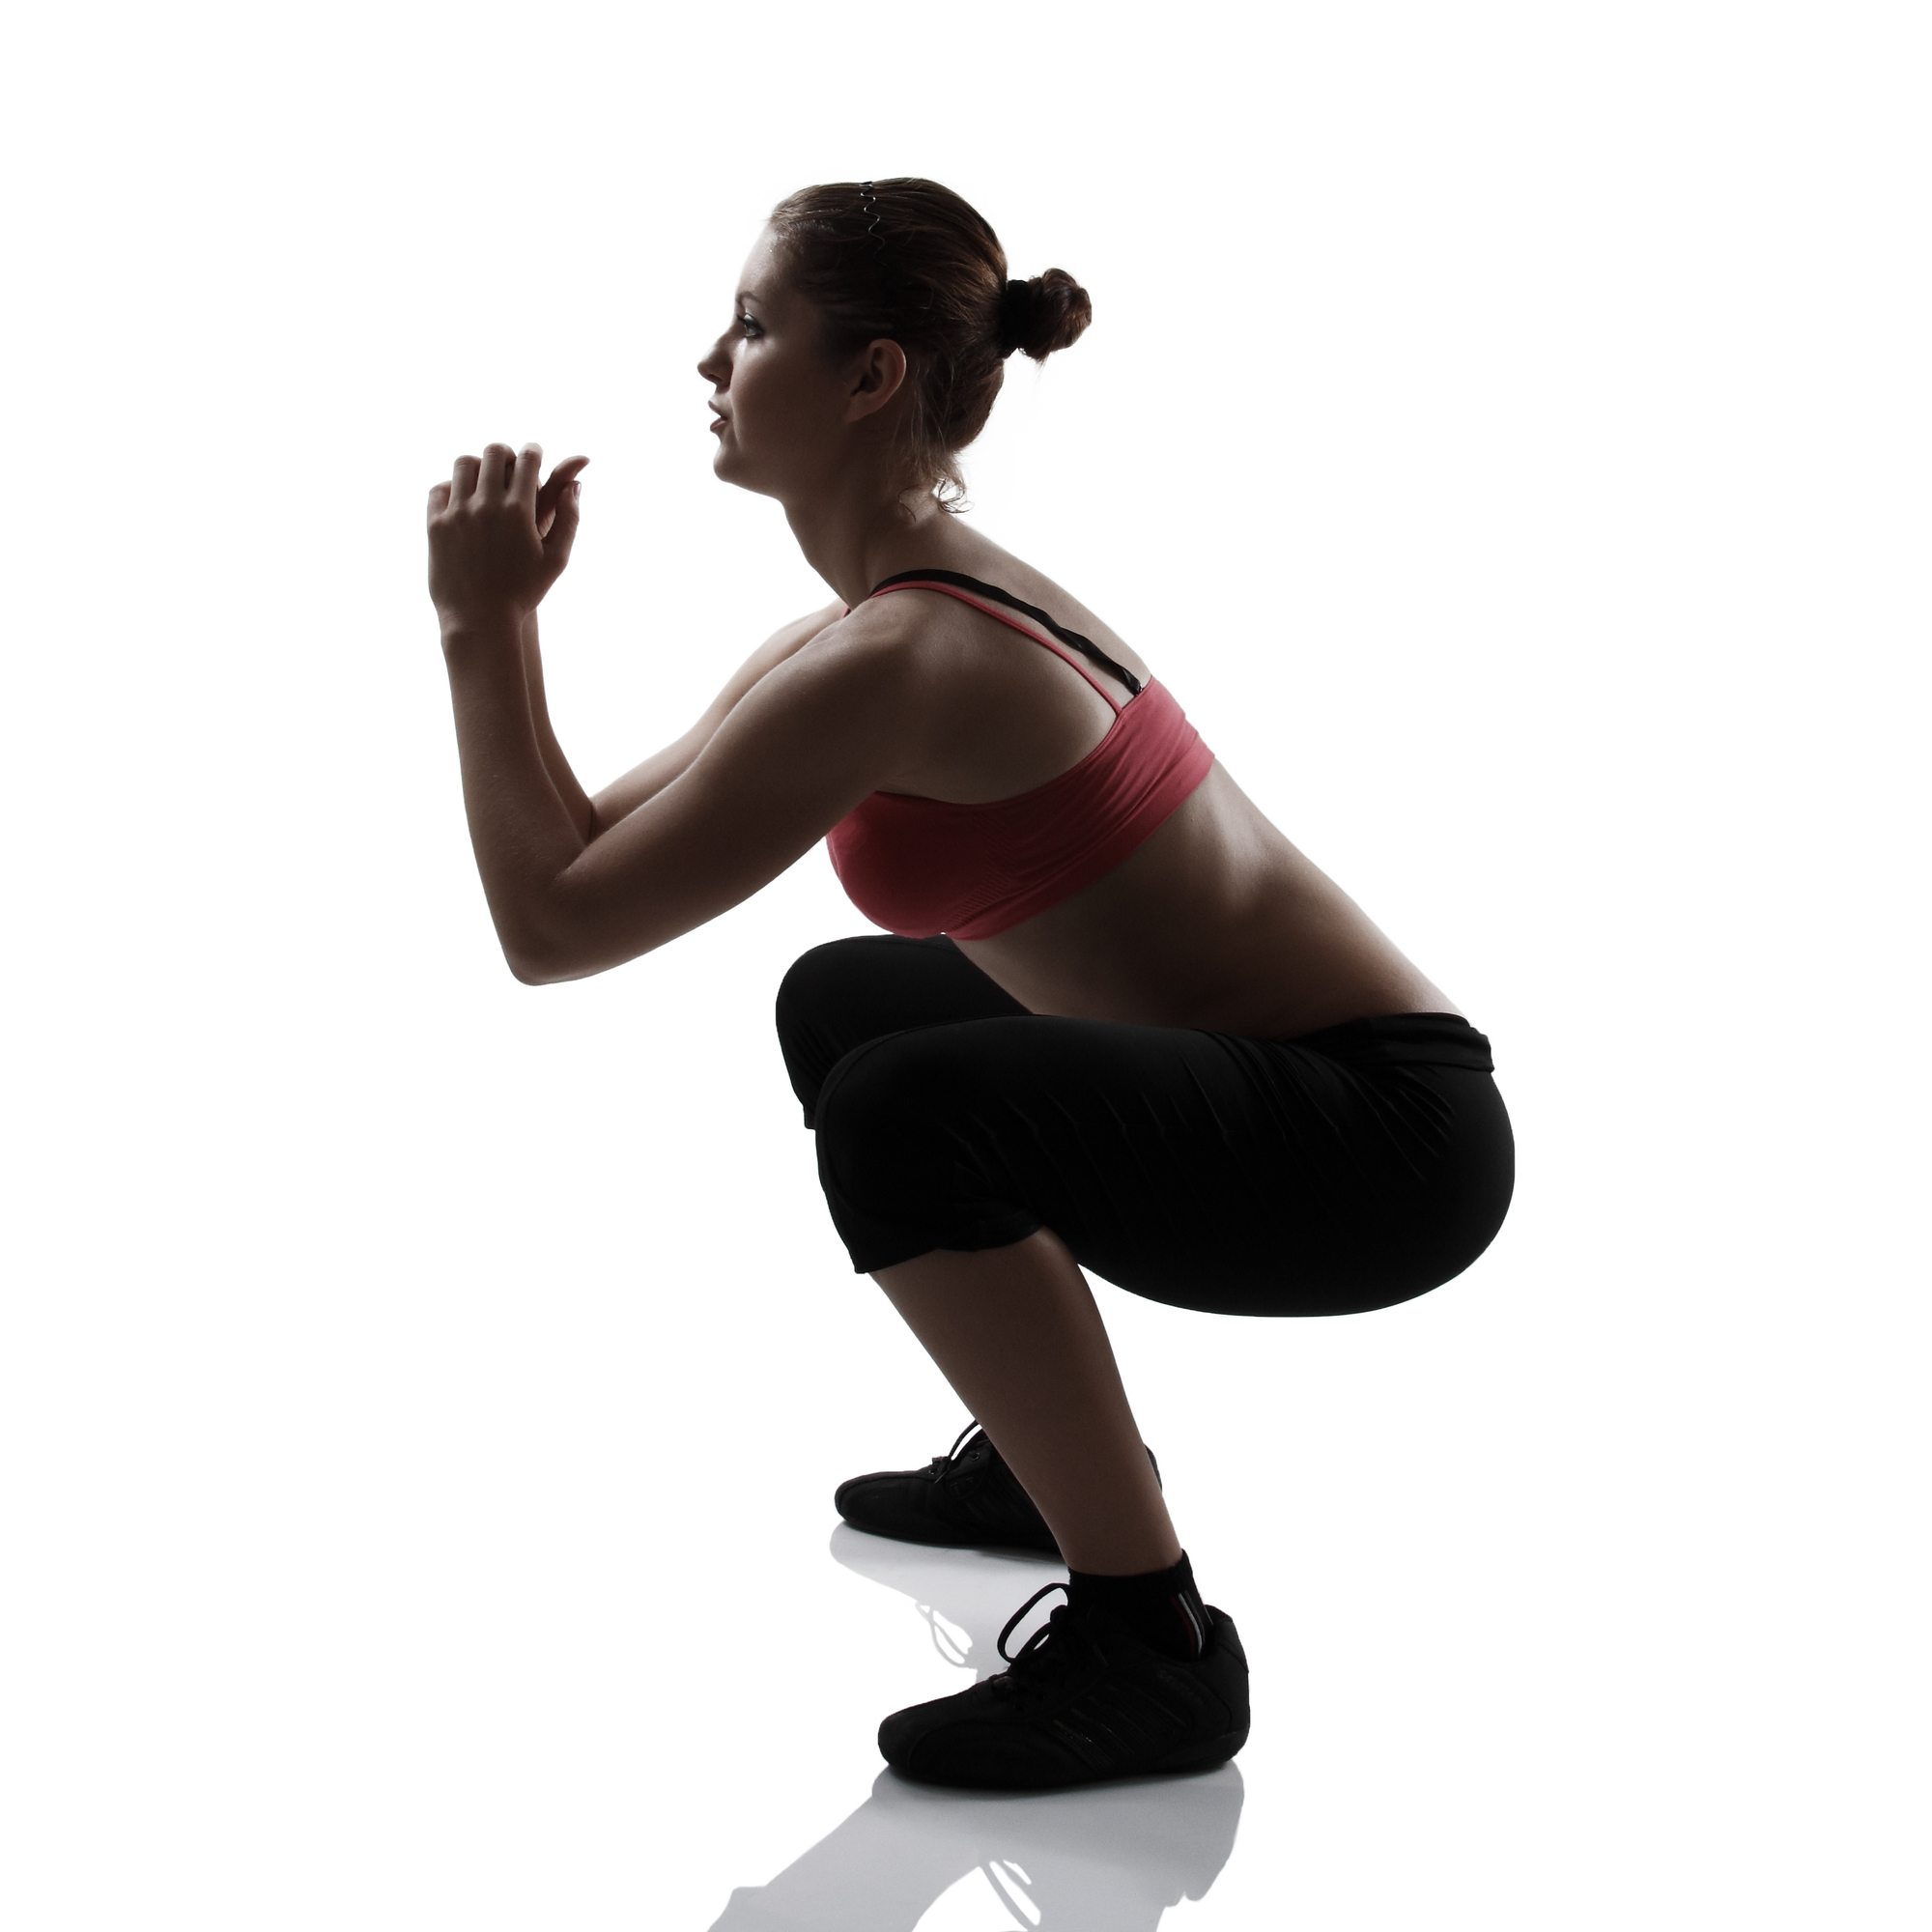 sport girl doing squatting exercise, silhouette studio shot over white background